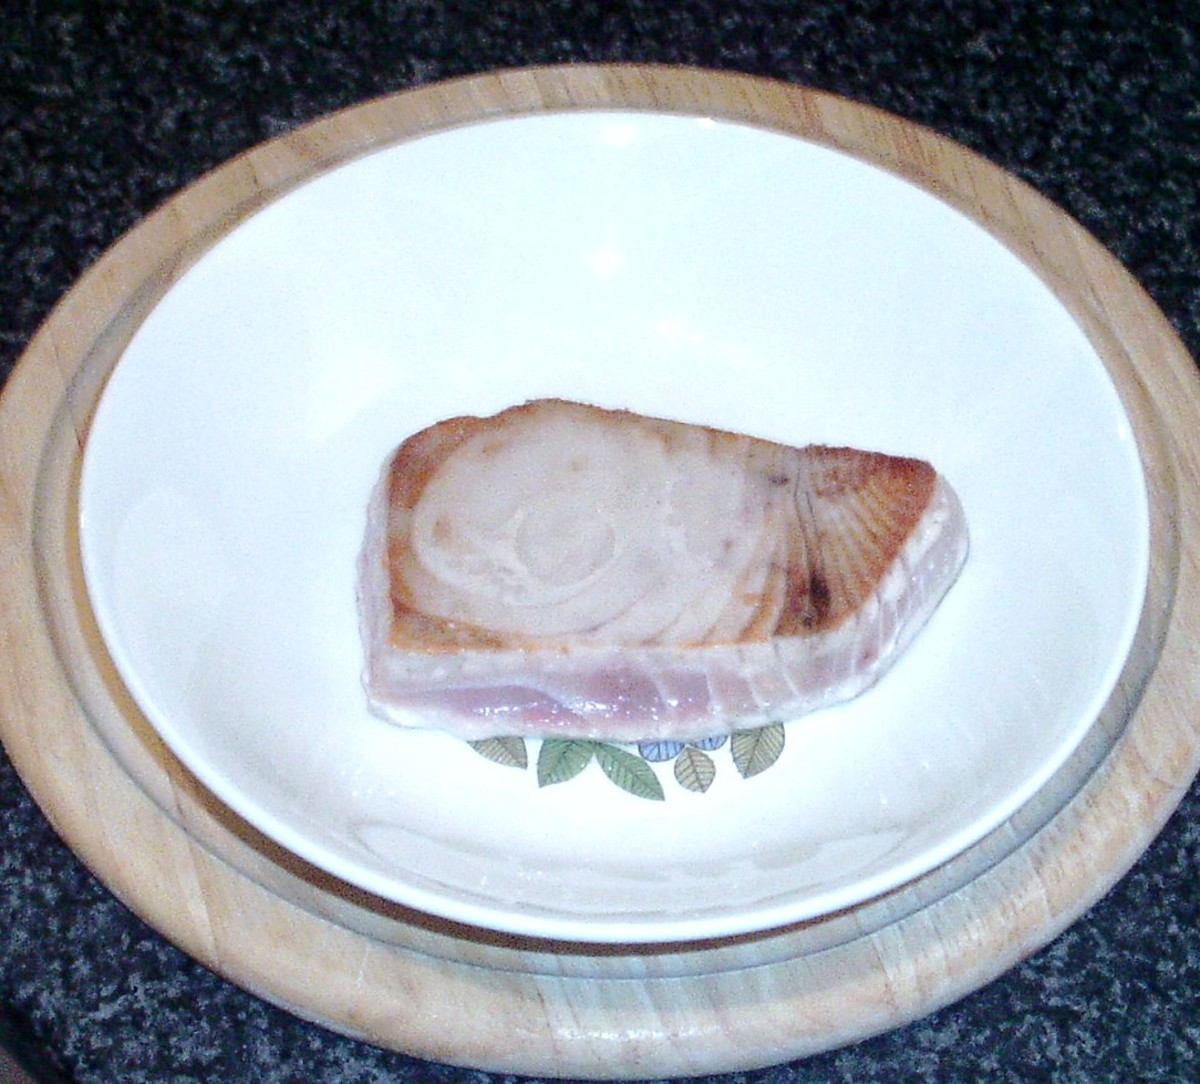 Seared tuna fillet is removed from frying pan